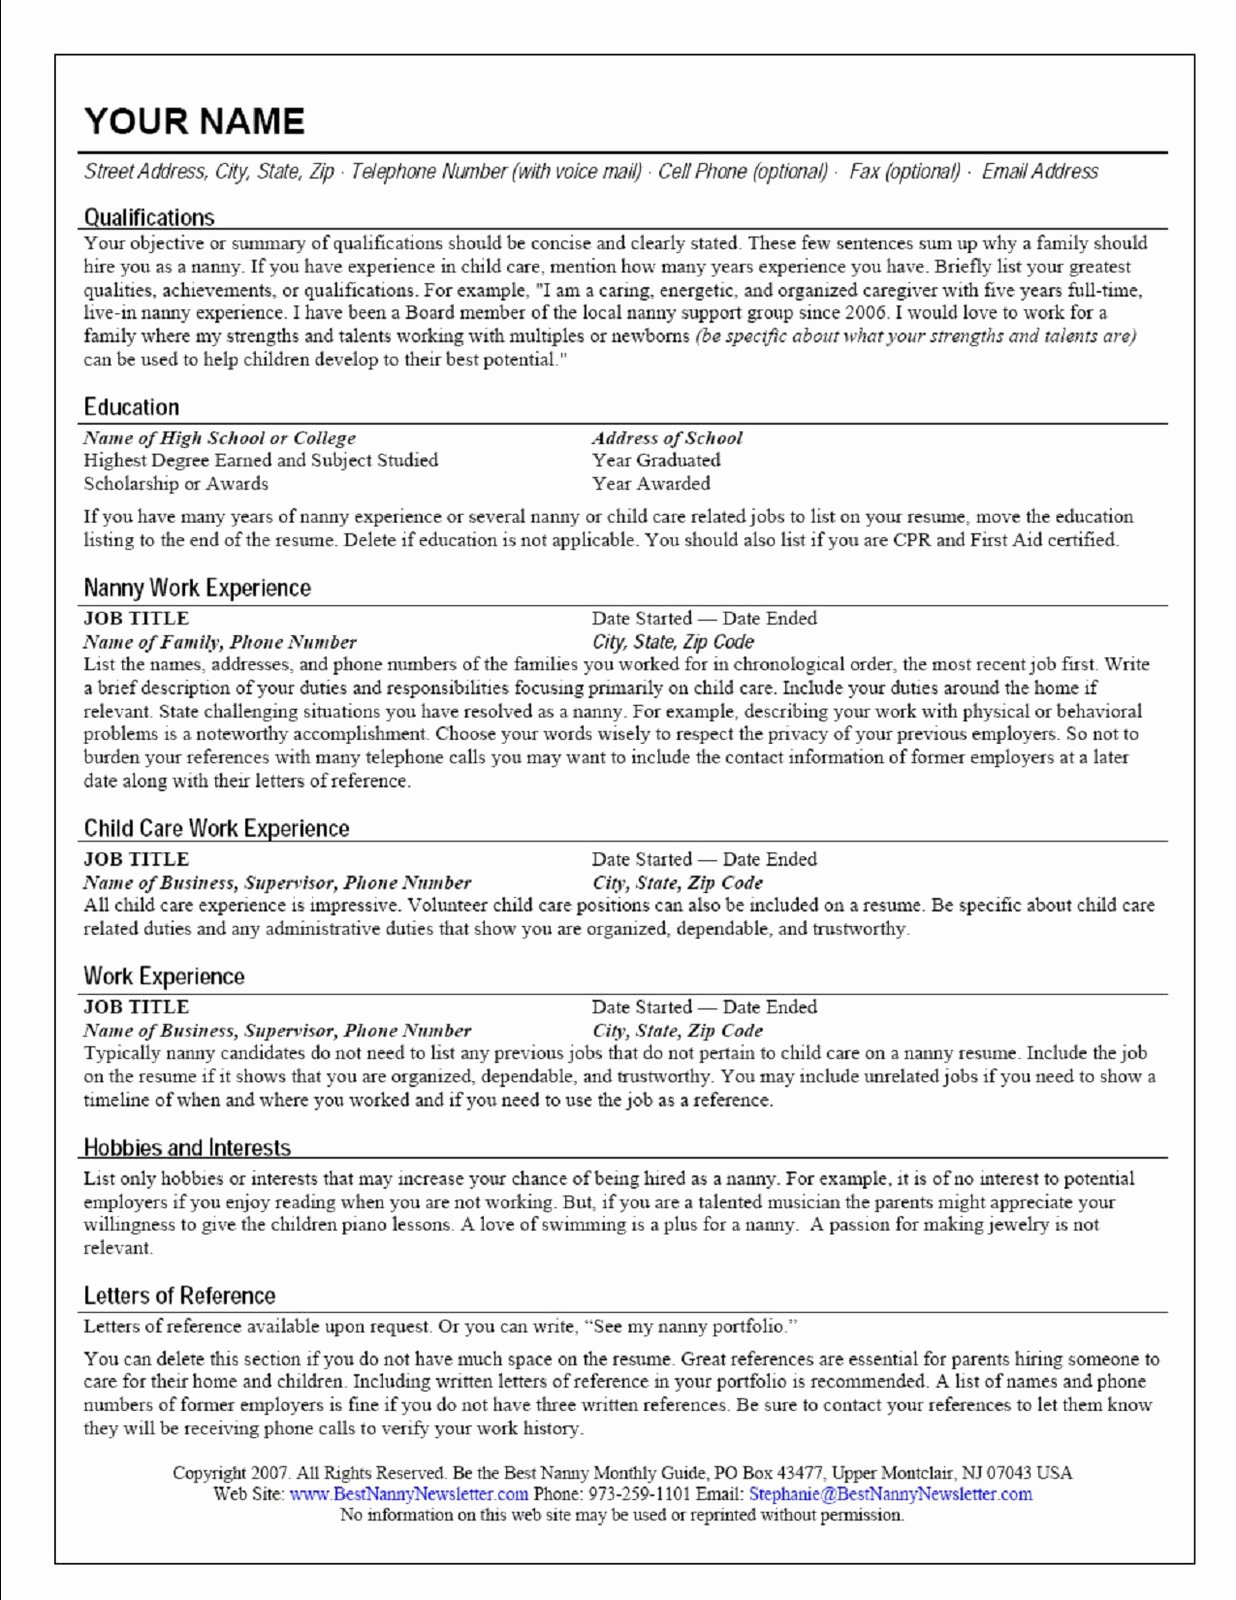 Application for Nanny Position Unique Creating A Nanny Resume